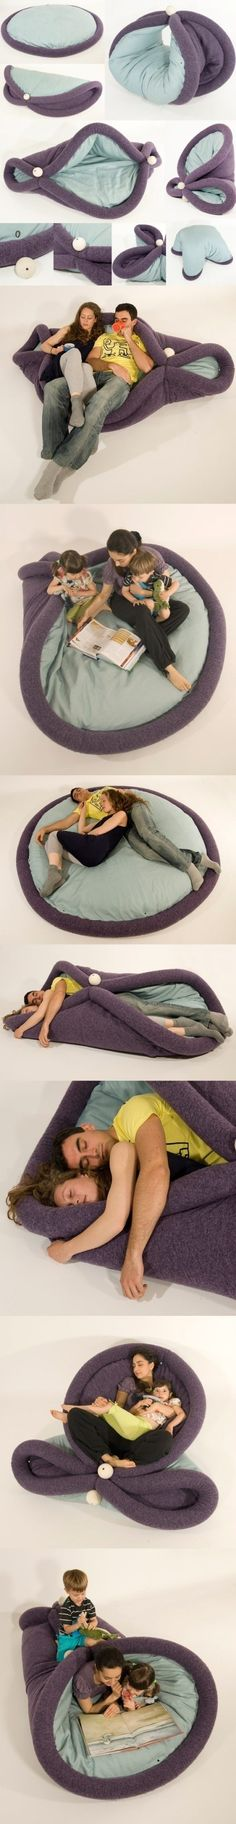 Blandito pillow. This is awesome.  I want one.